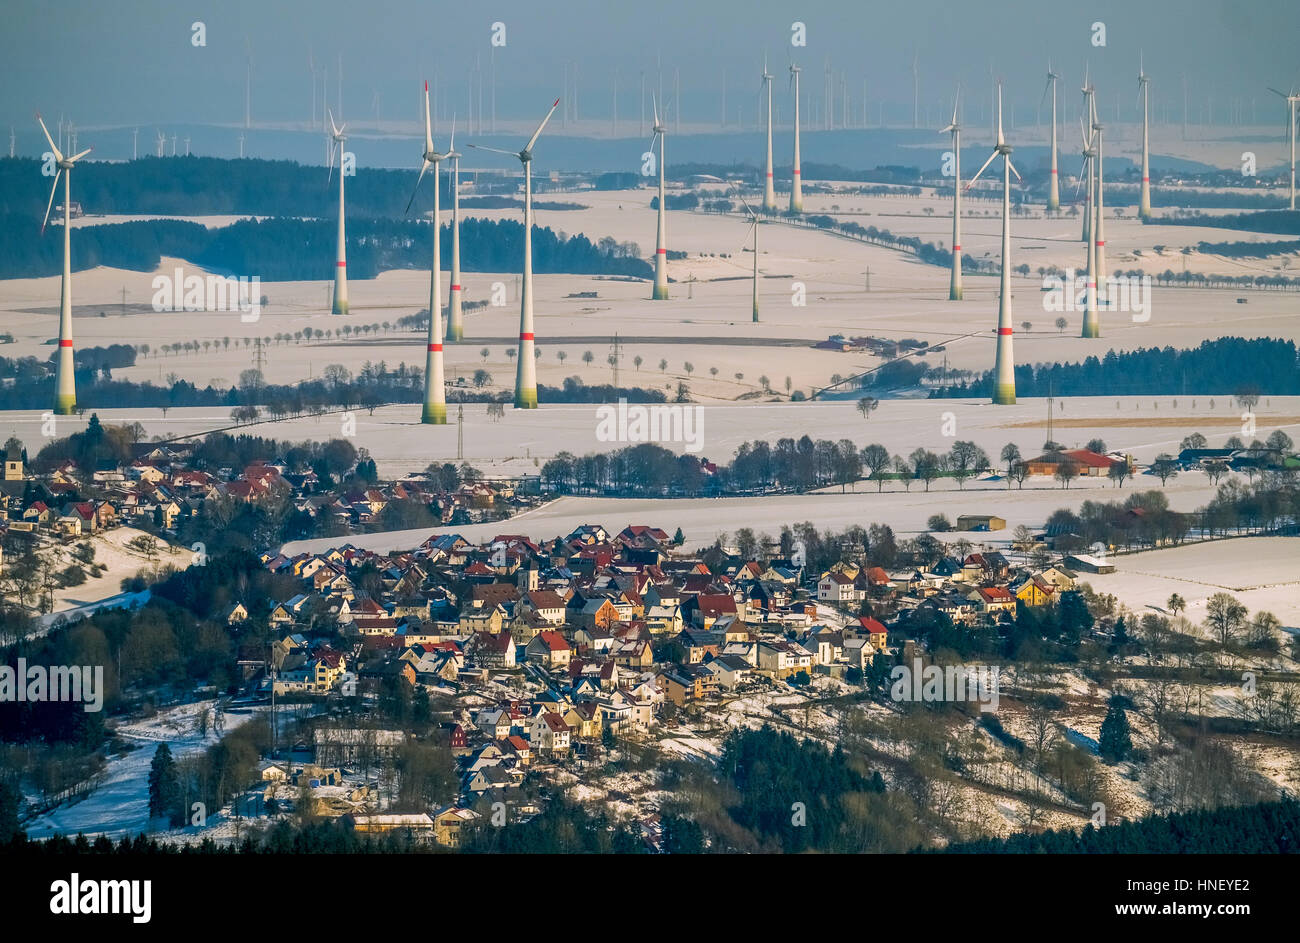 Windpark Buren, wind turbines, view of Rüthen, Sauerland, North Rhine-Westphalia, Germany - Stock Image